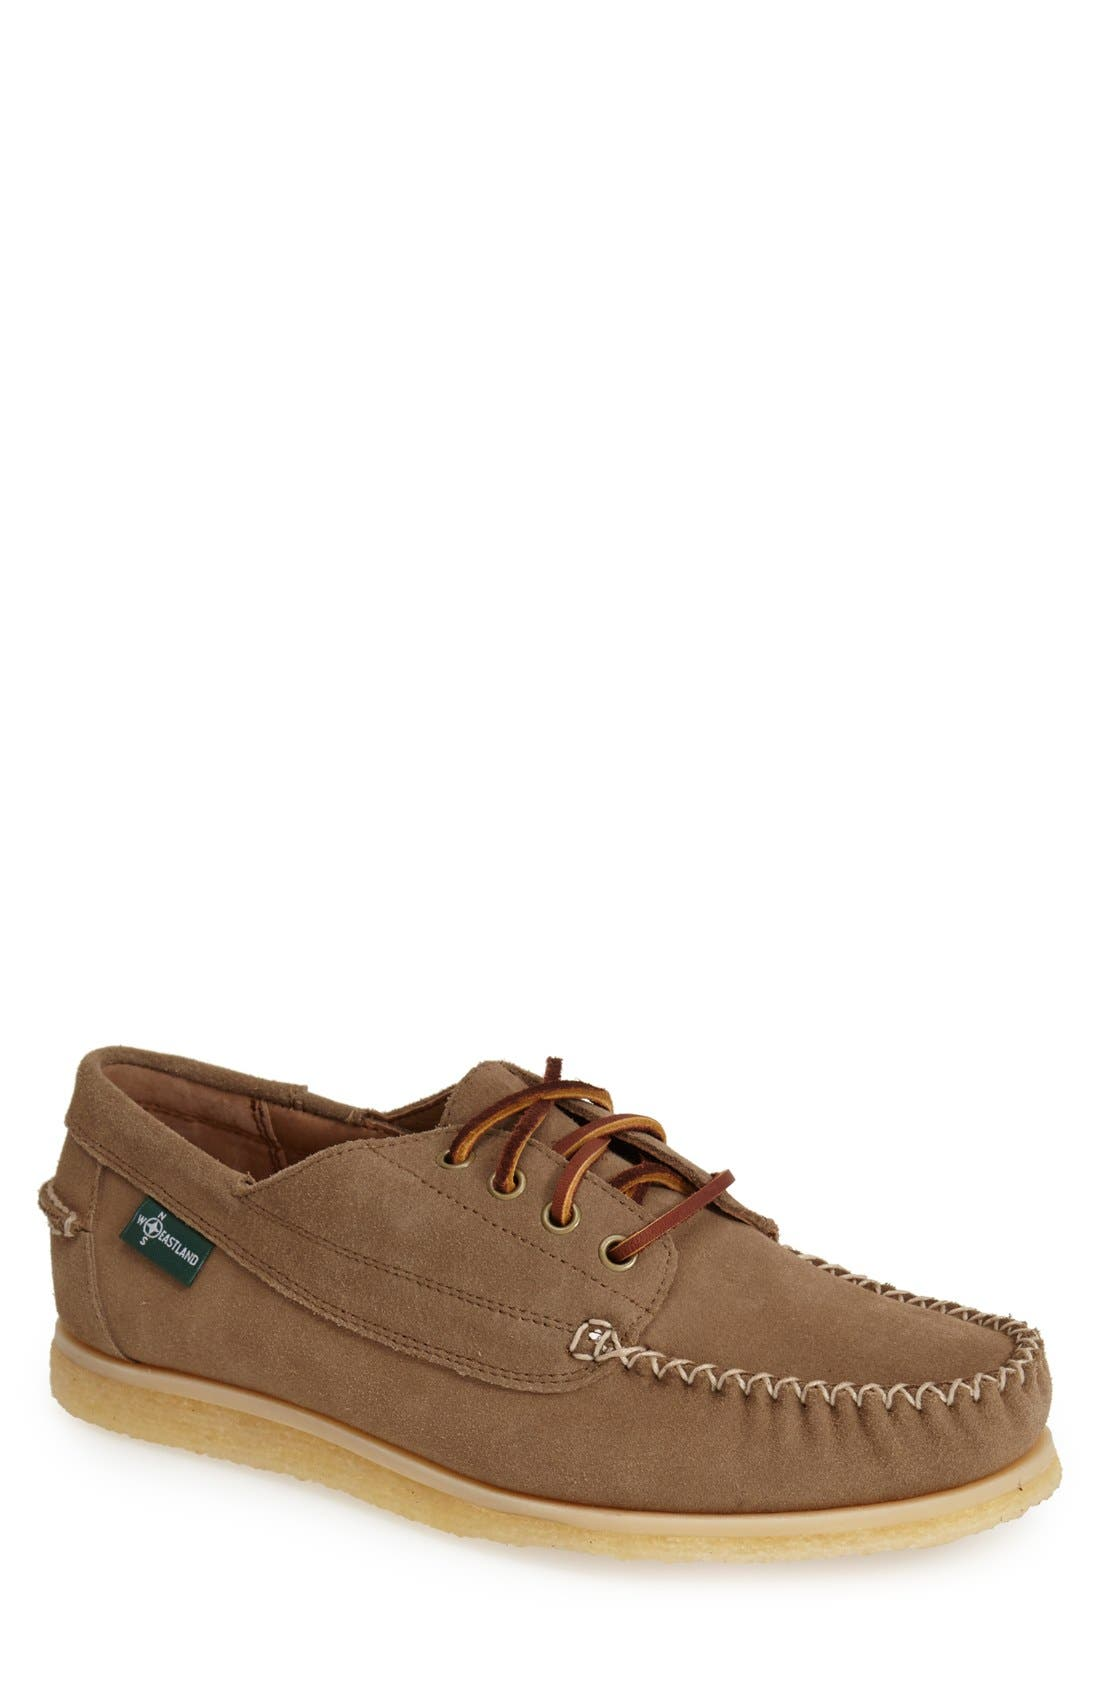 Eastland 'Fletcher 1955' Boat Shoe